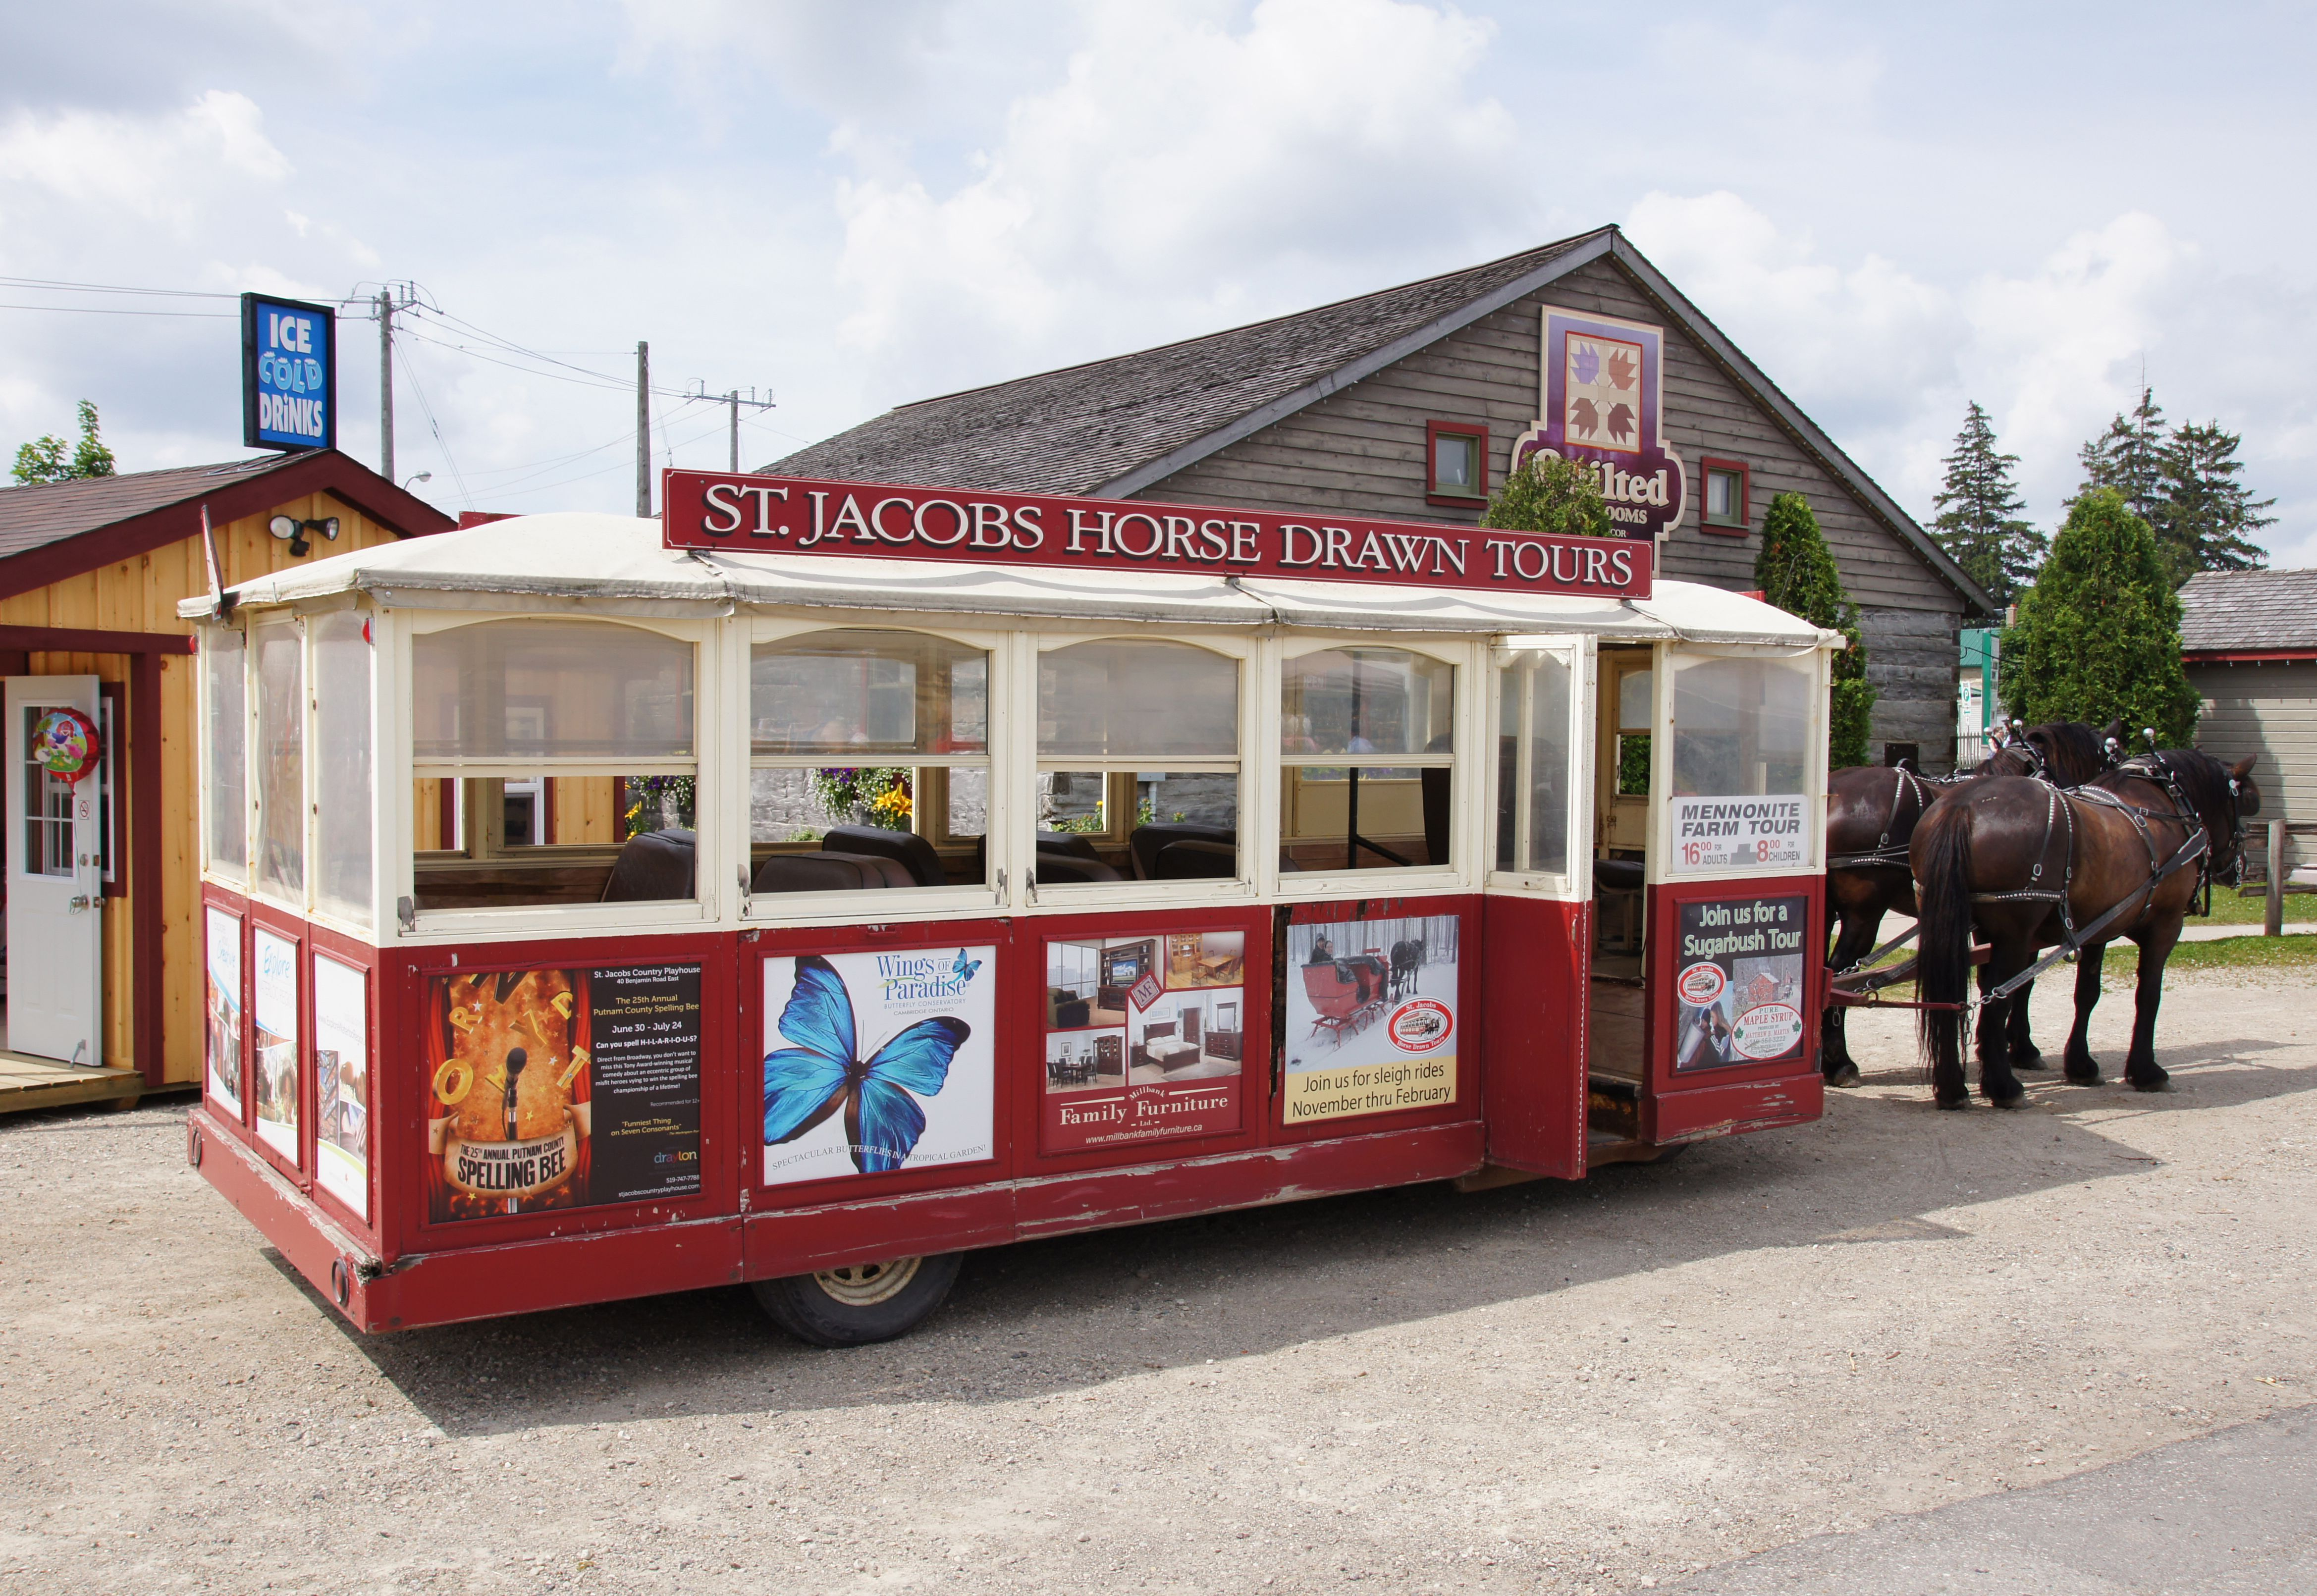 Horse-drawn tour trolley in St. Jacobs